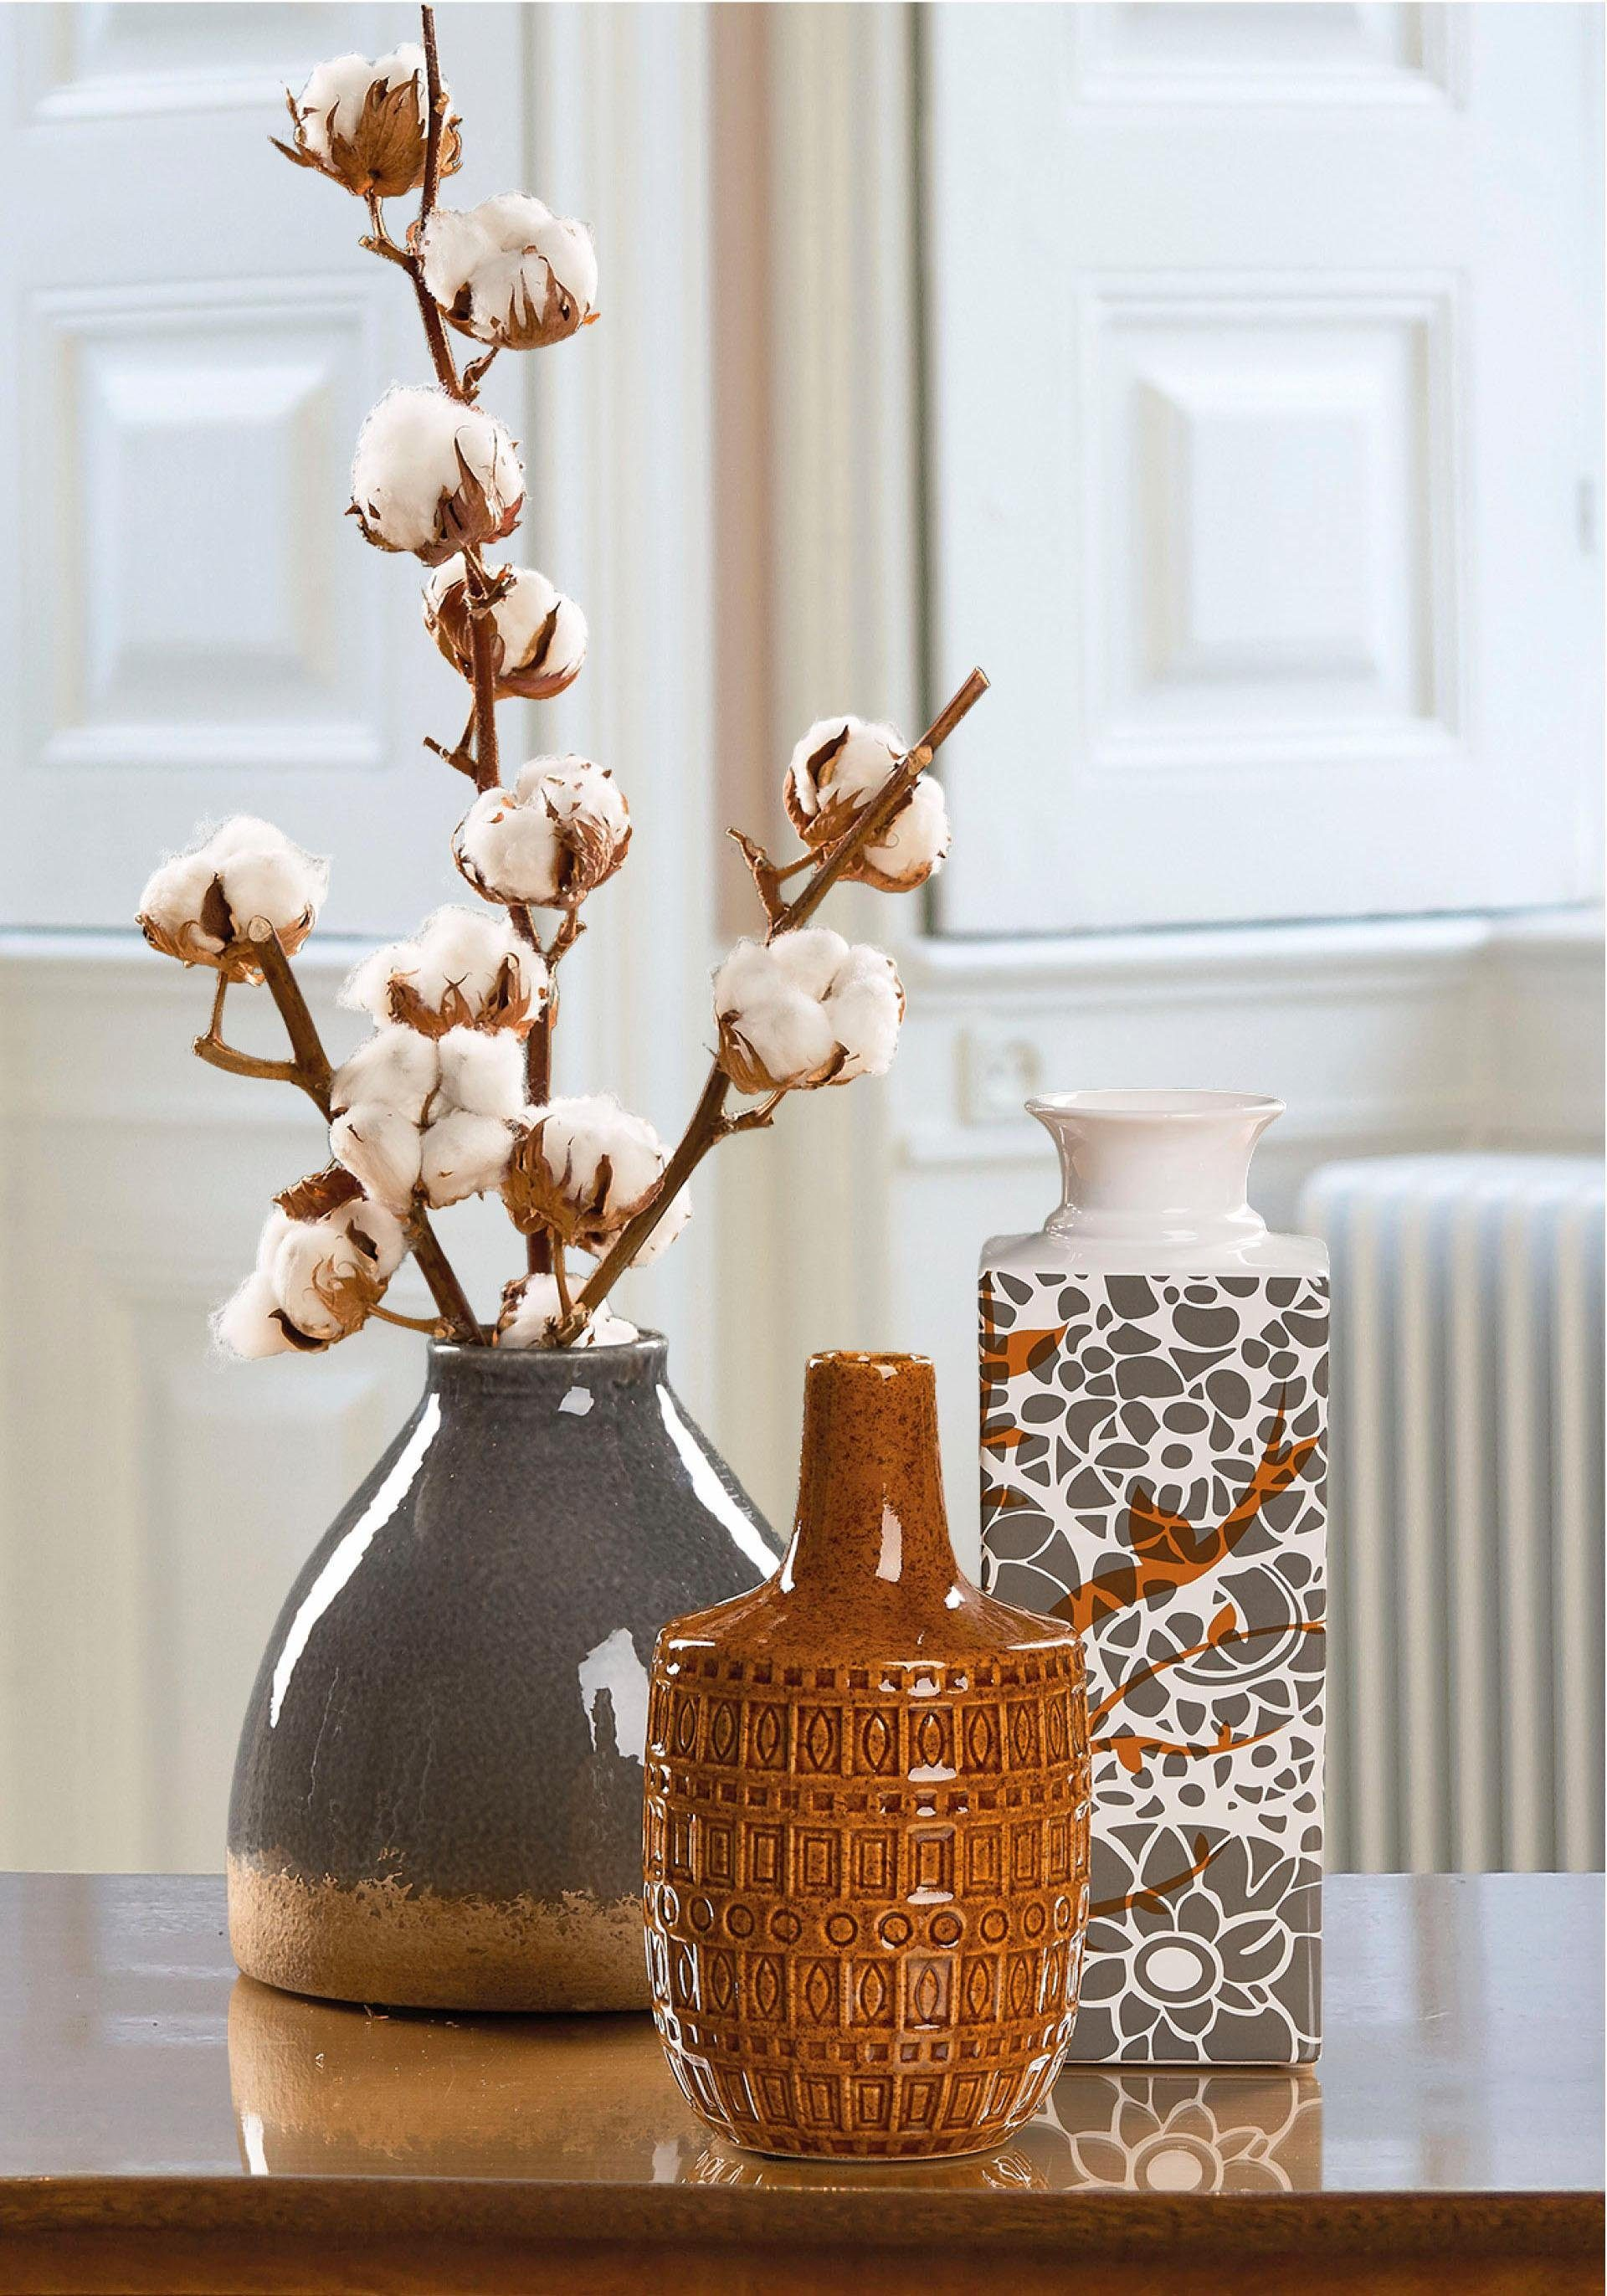 Home affaire Vase mit Muster